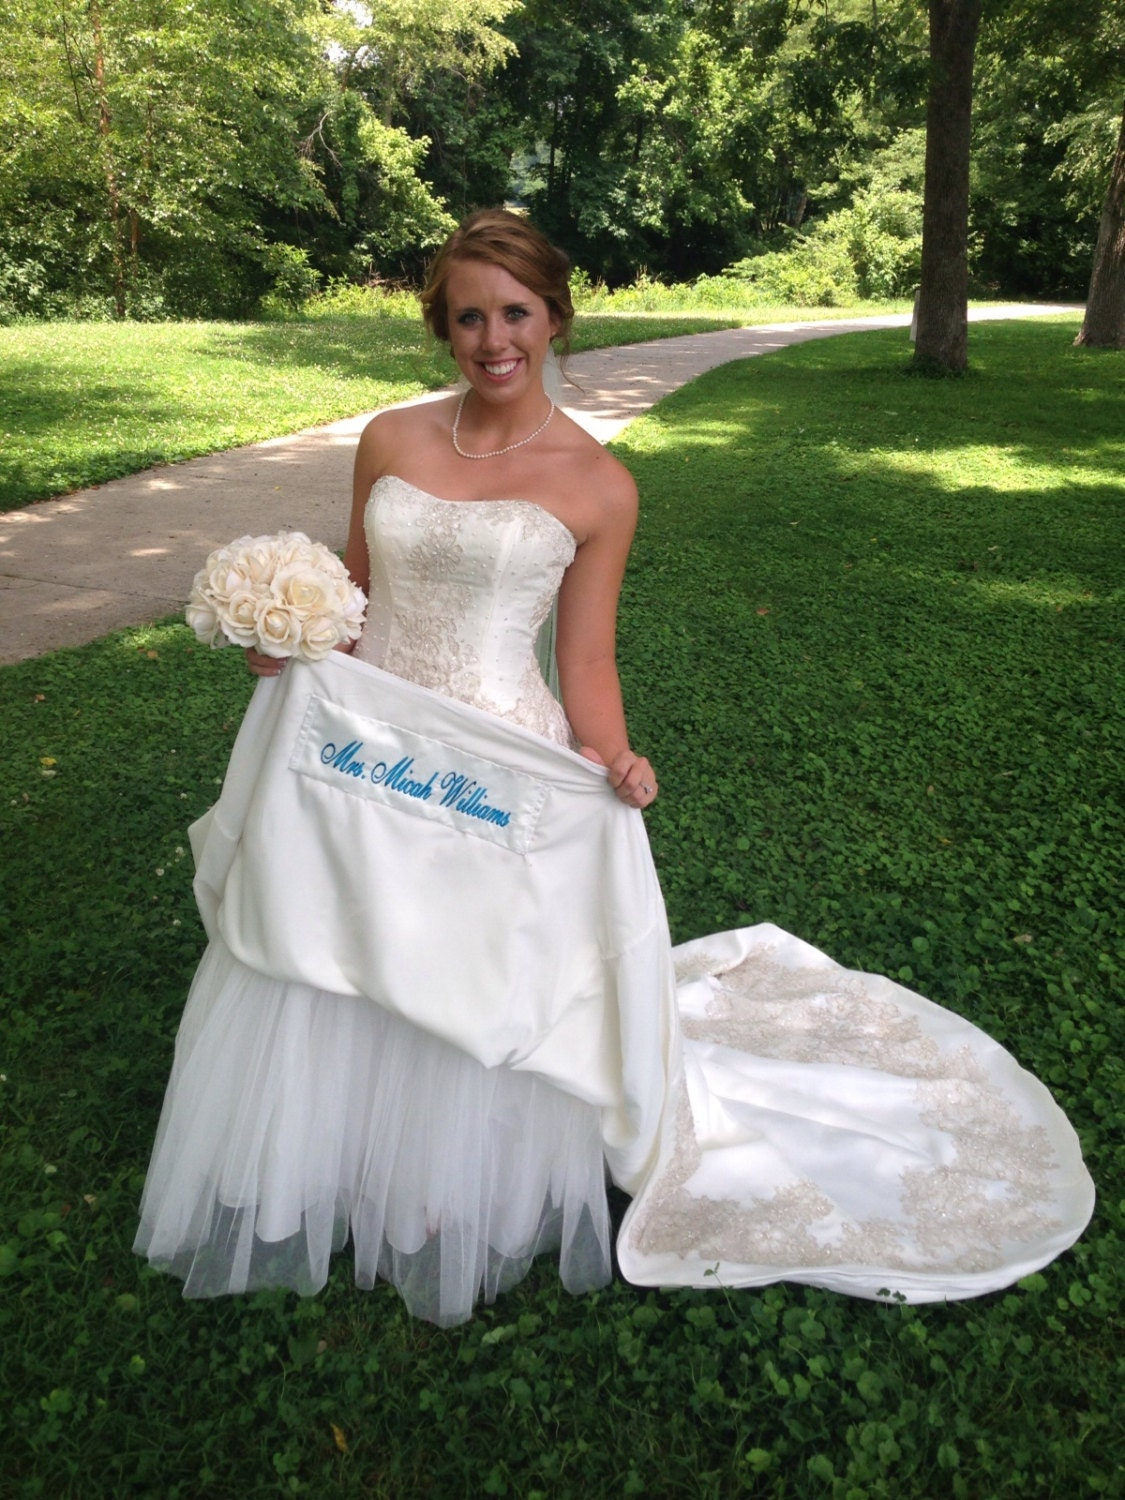 Blue Dress Tag Name Patch For Hem Of Wedding Dress Wedding Etsy